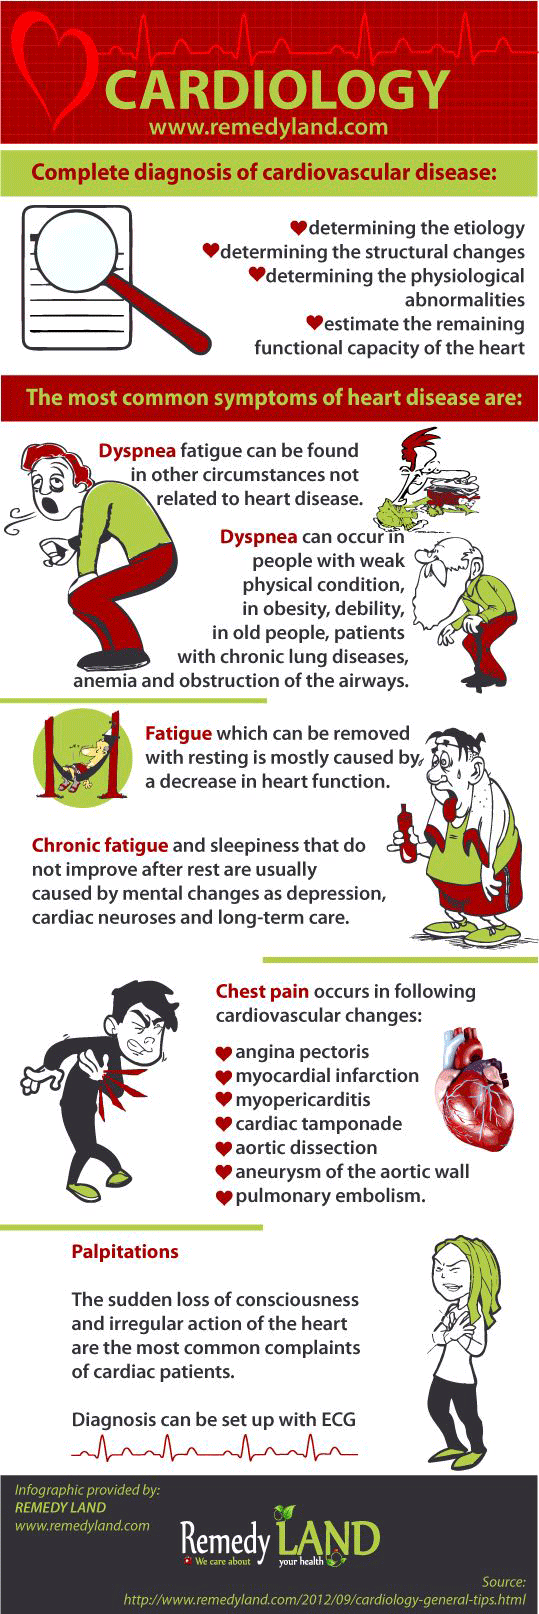 Cardiology General Tips Infographic, dyspnea, fatigue, chest pain and palpitations